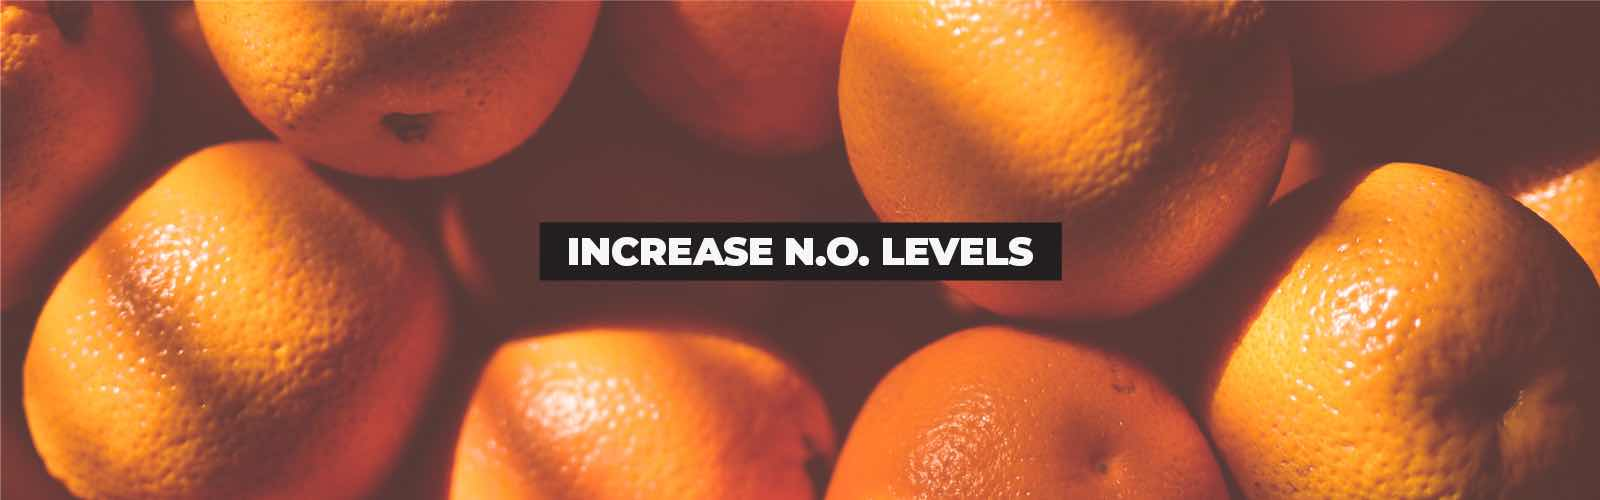 5 Ways to Boost Nitric Oxide Levels Naturally For Better Circulation